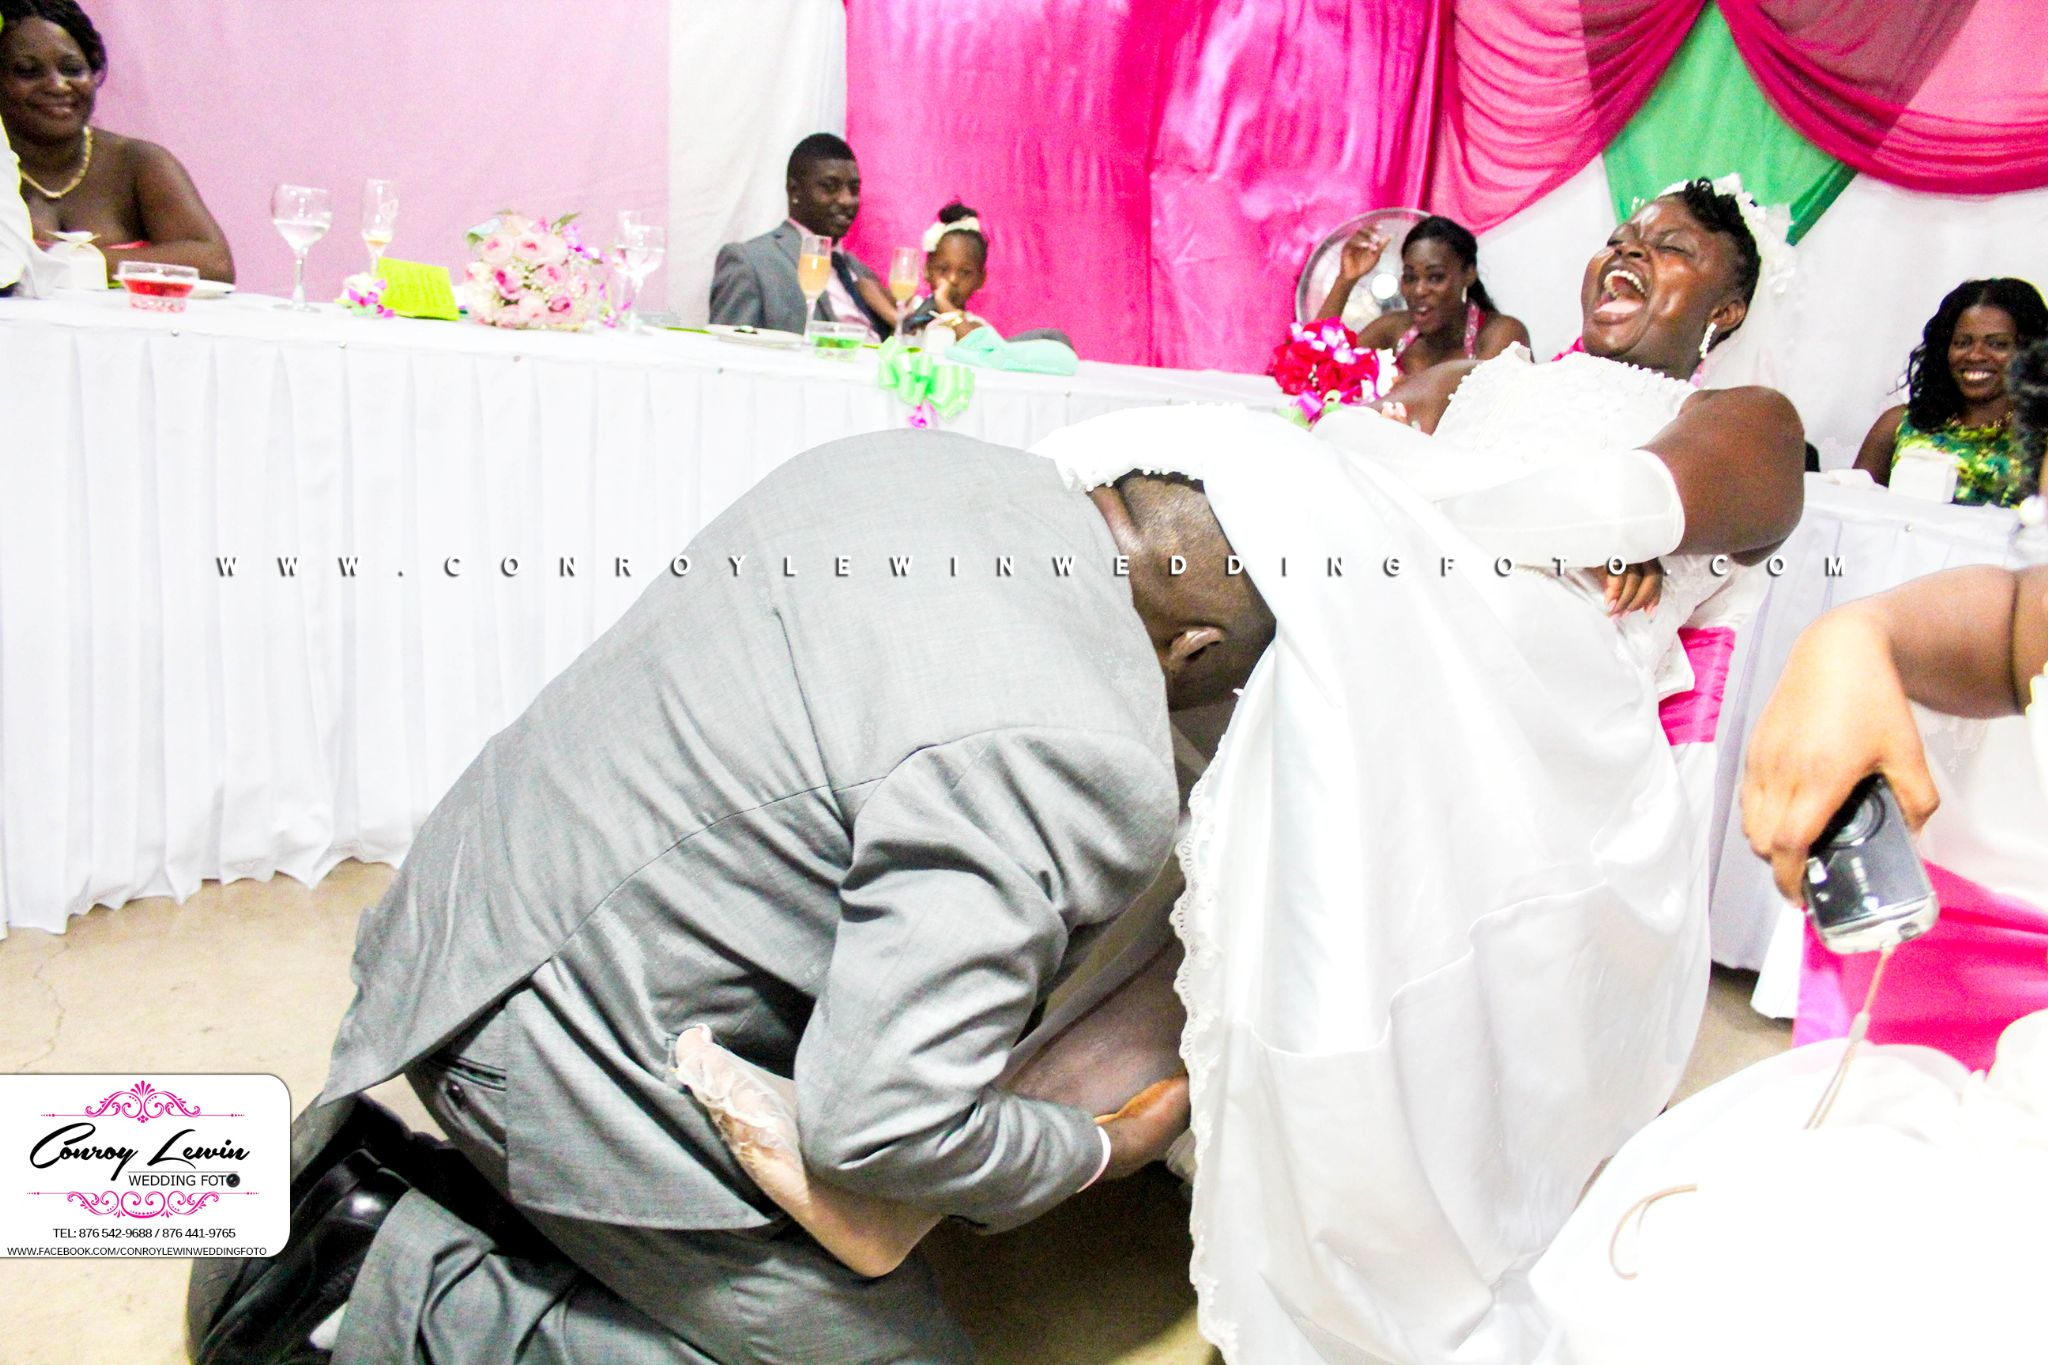 That moment by Conroy Lewin Wedding Foto